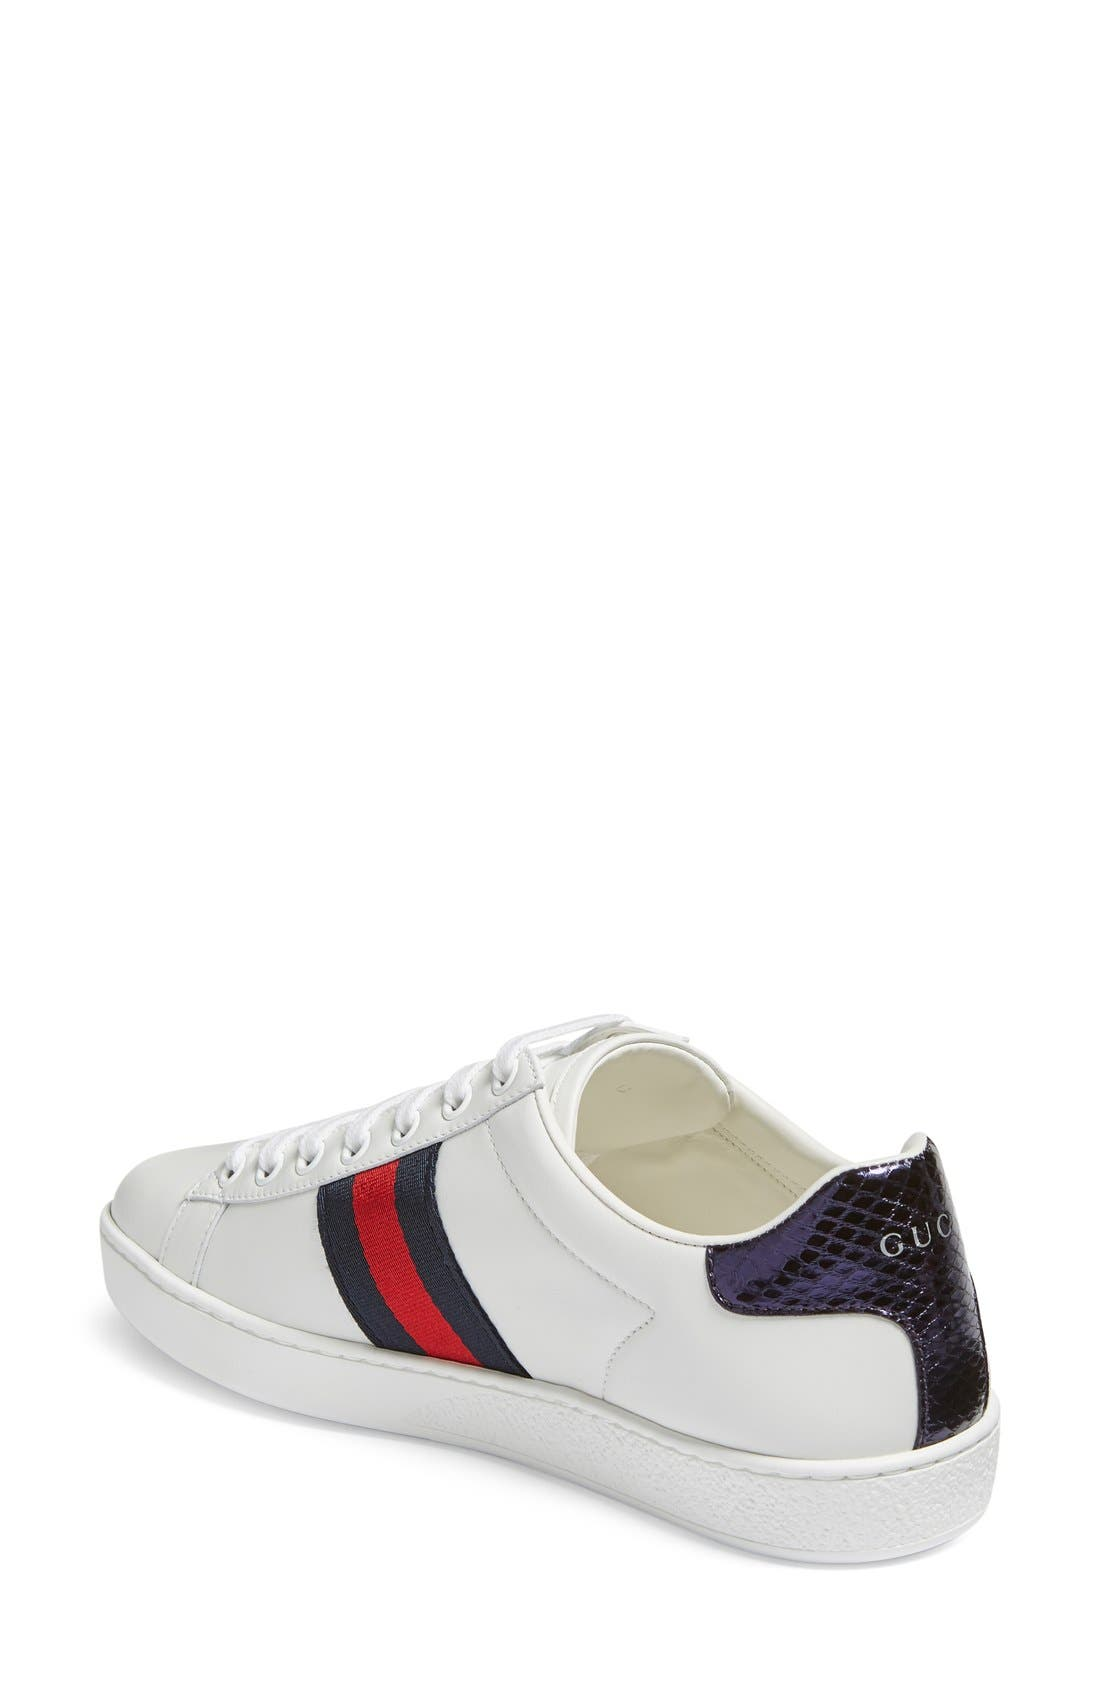 Alternate Image 2  - Gucci New Age Snake Embellished Sneaker (Women)